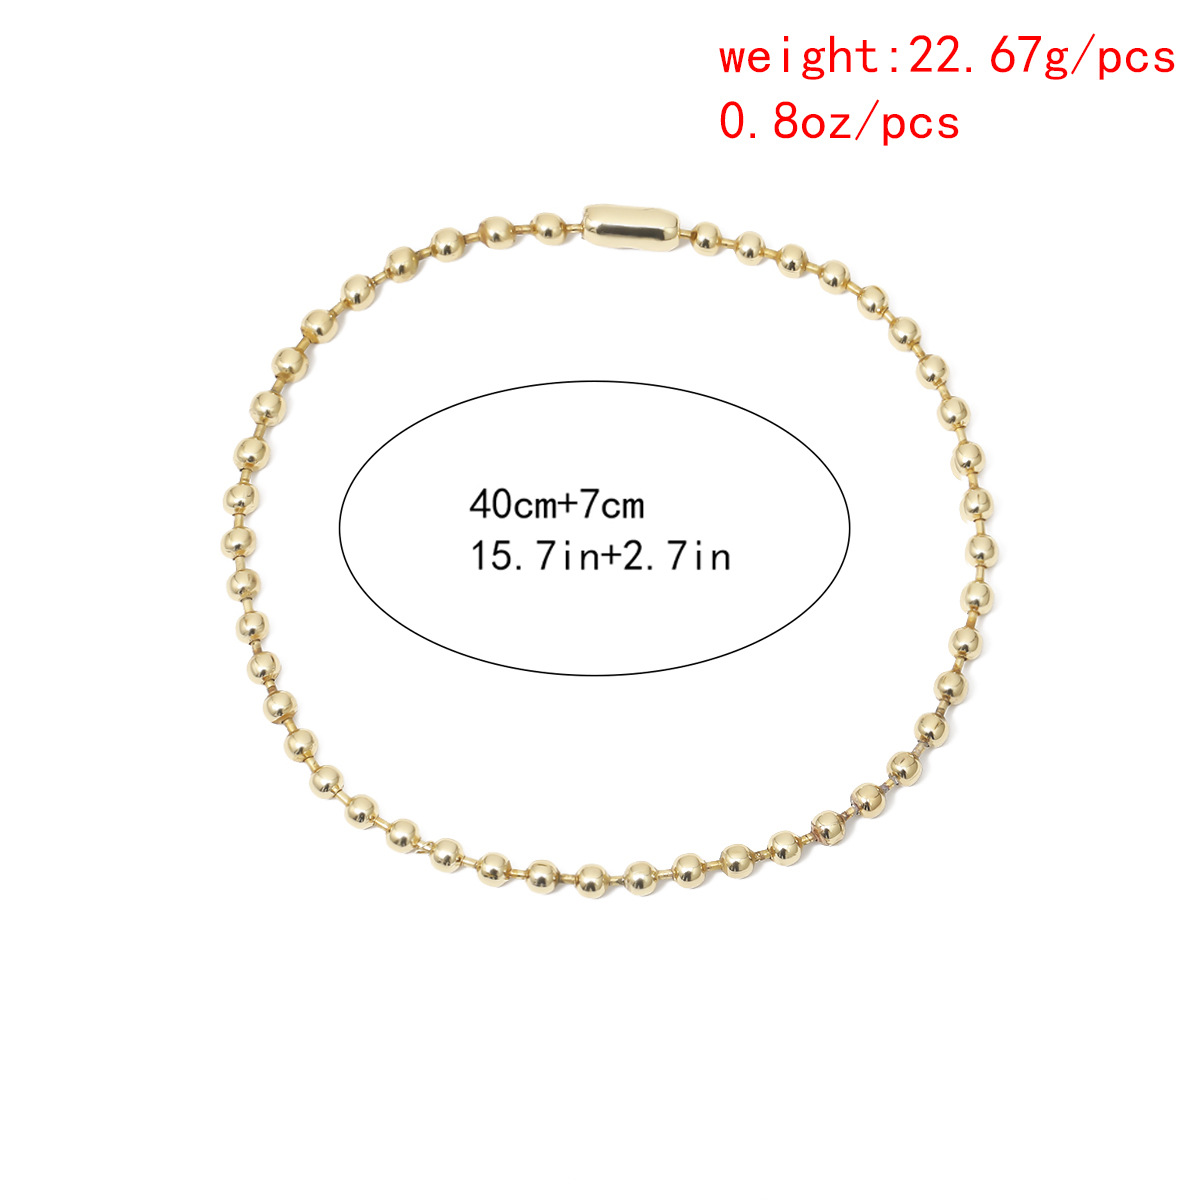 New fashion simple single-layer design twist chain item decorated wild round beads handmade metal necklace women NHXR204538